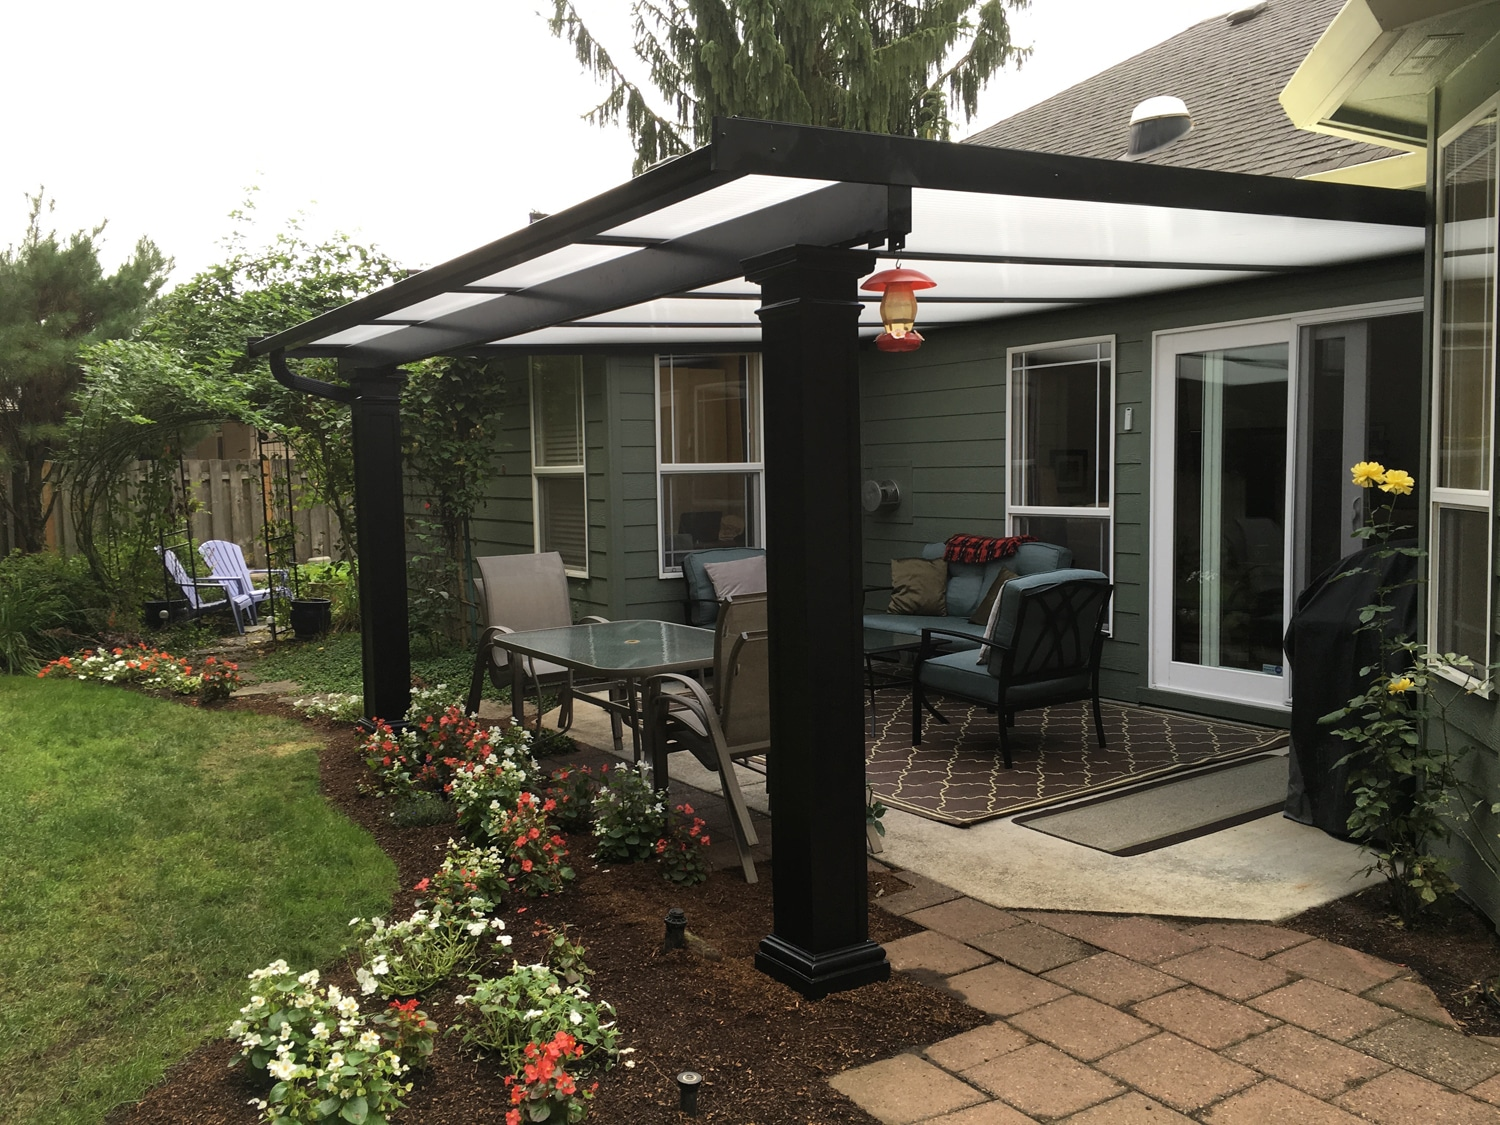 Patio Rooms & Covers, Sunrooms, Swimming Pool Enclosures on Patio Cover Ideas Images id=39339